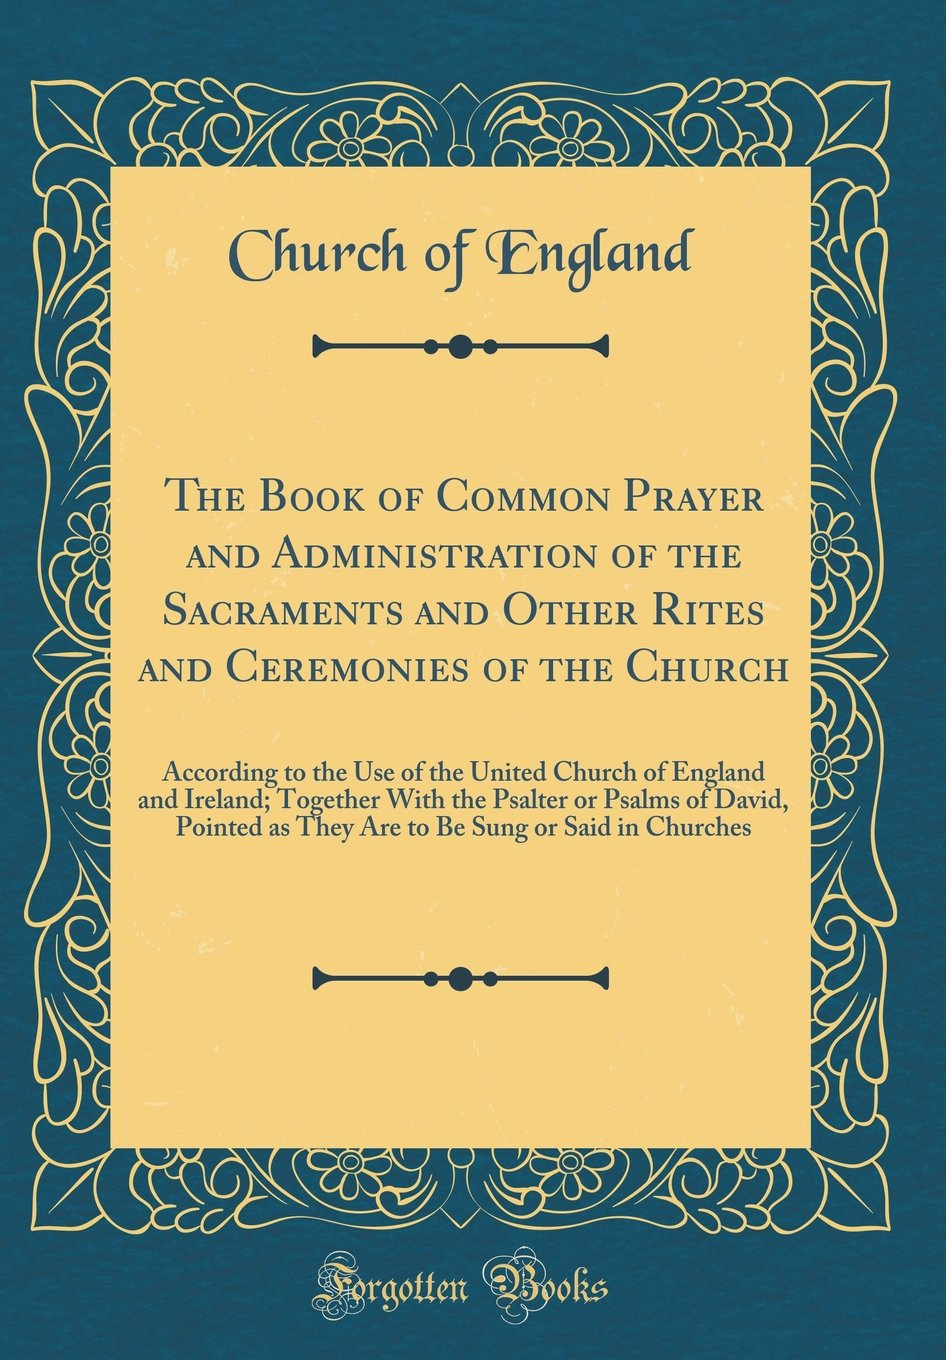 The Book of Common Prayer and Administration of the Sacraments and Other Rites and Ceremonies of the Church: According to the Use of the United Church ... of David, Pointed as They Are to Be Sung or pdf epub